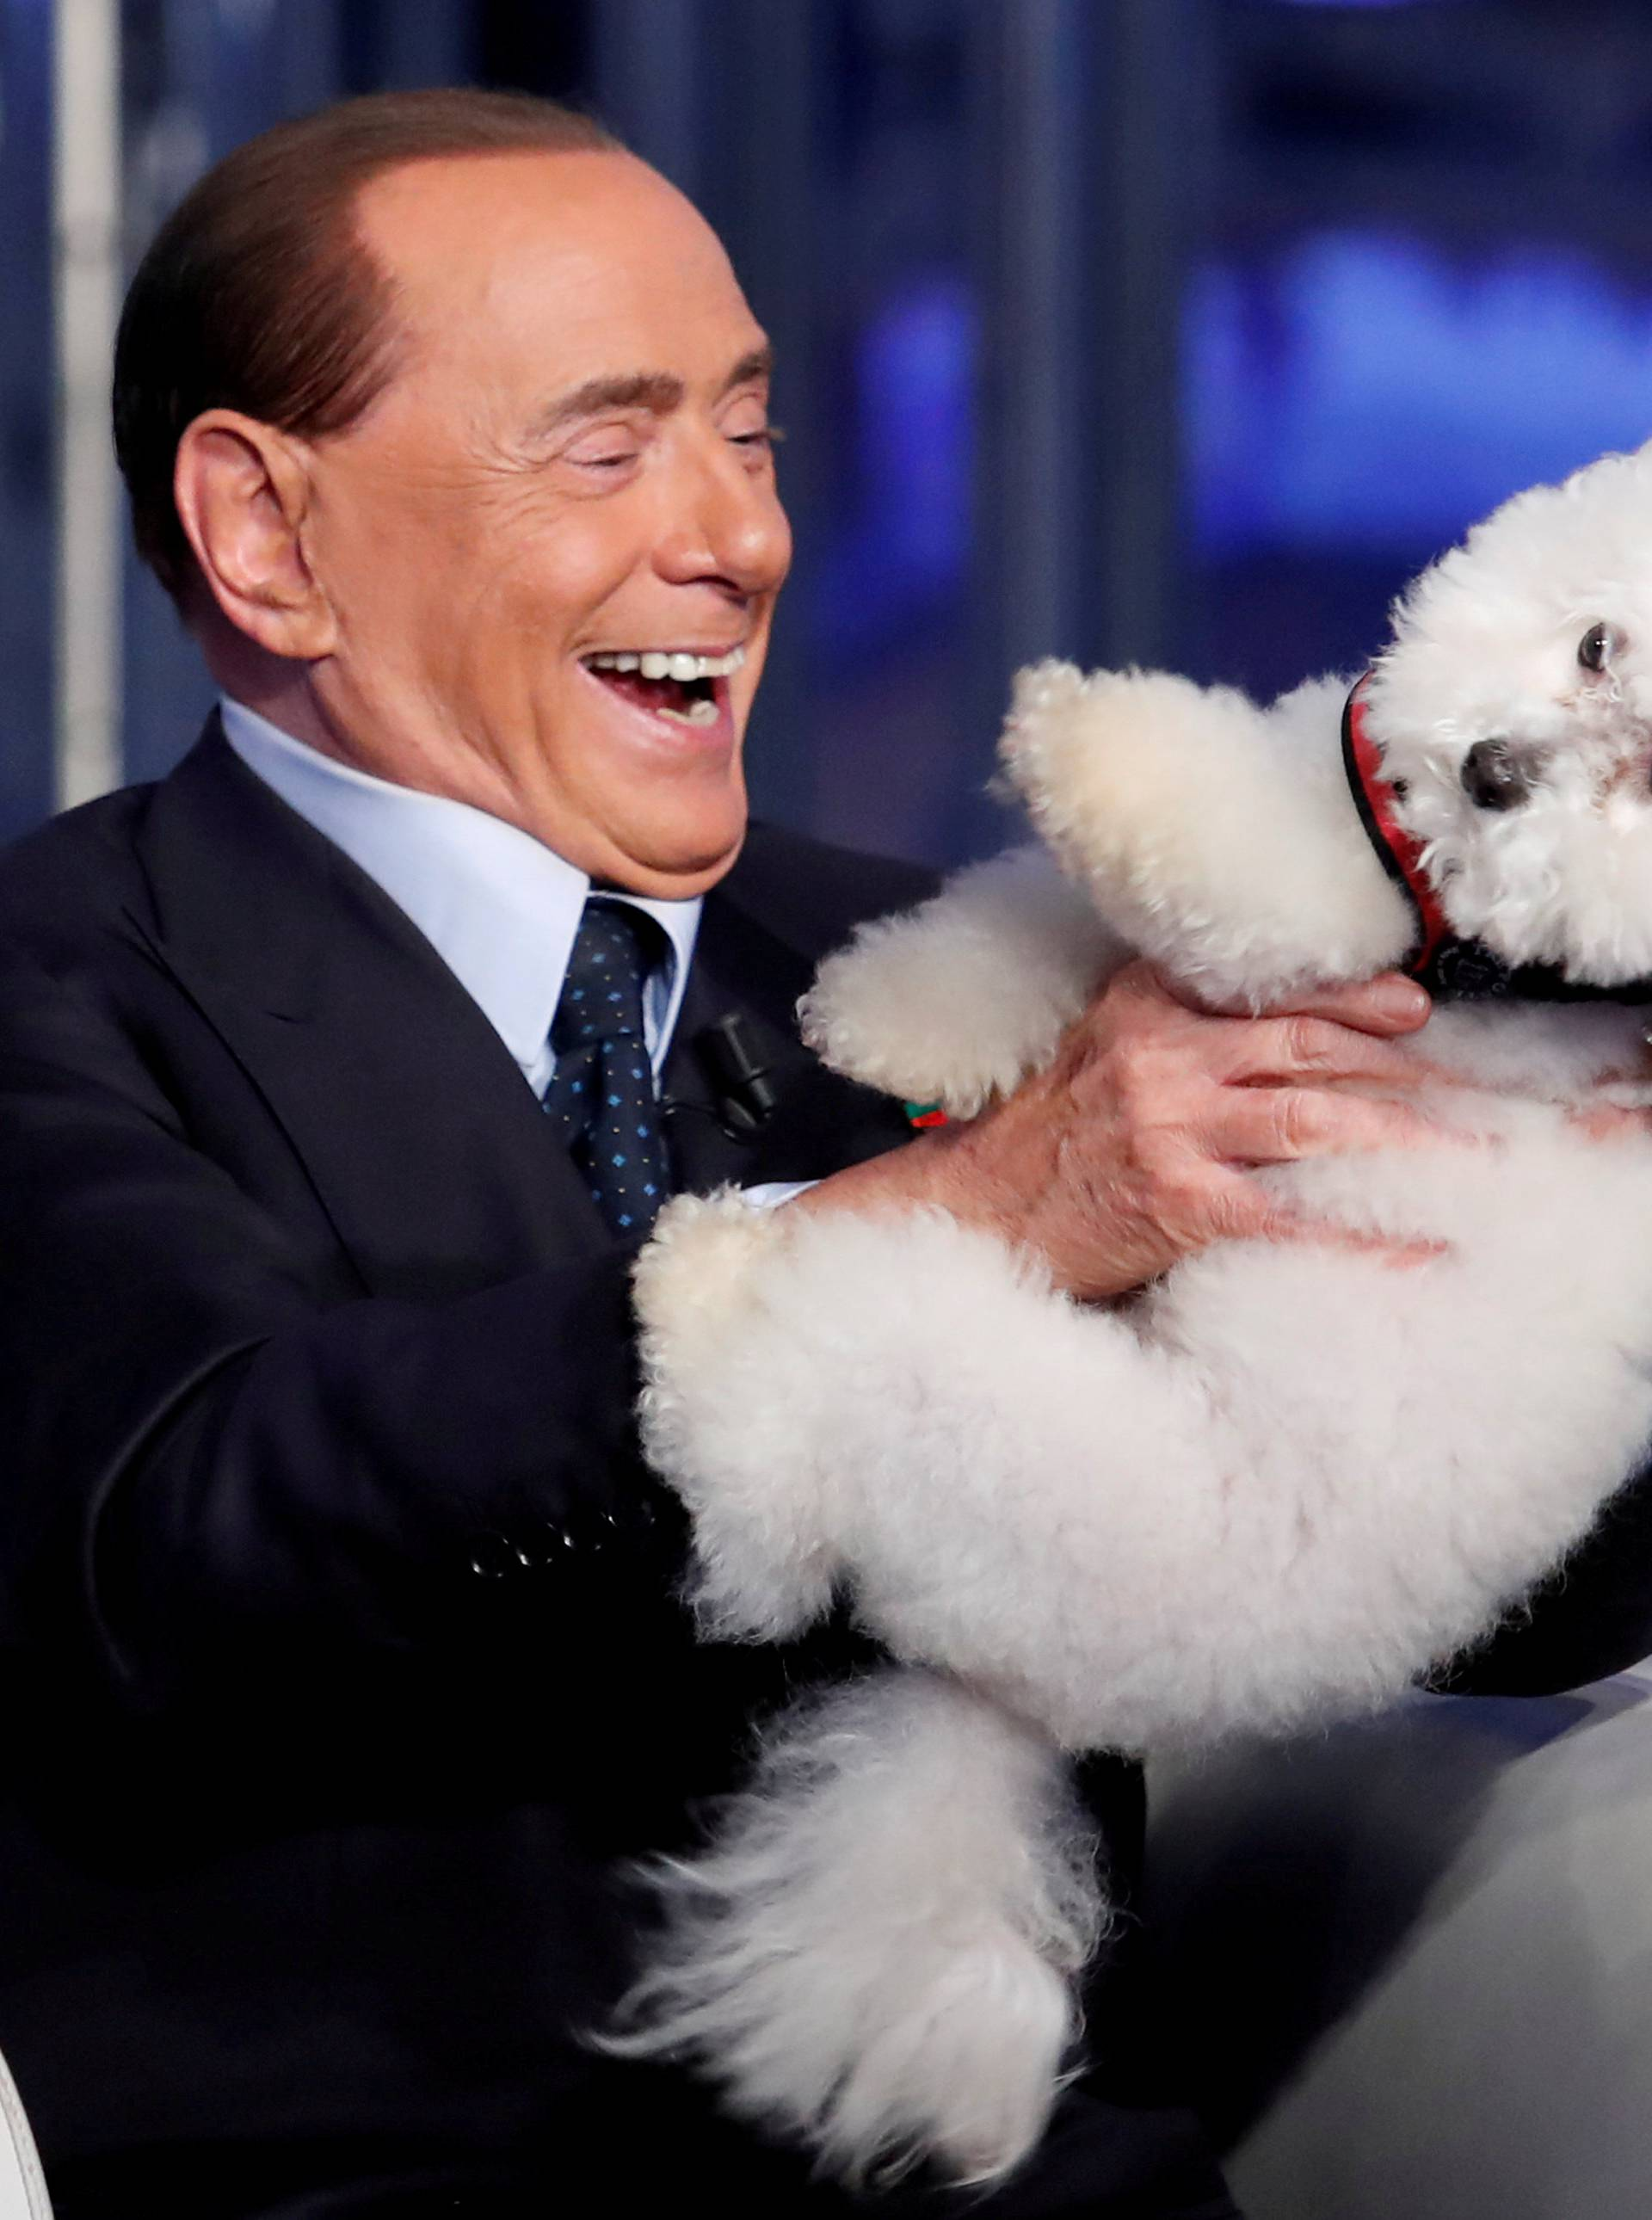 """FILE PHOTO: Italy's former PM Berlusconi plays with a dog during the television talk show """"Porta a Porta"""" in Rome"""